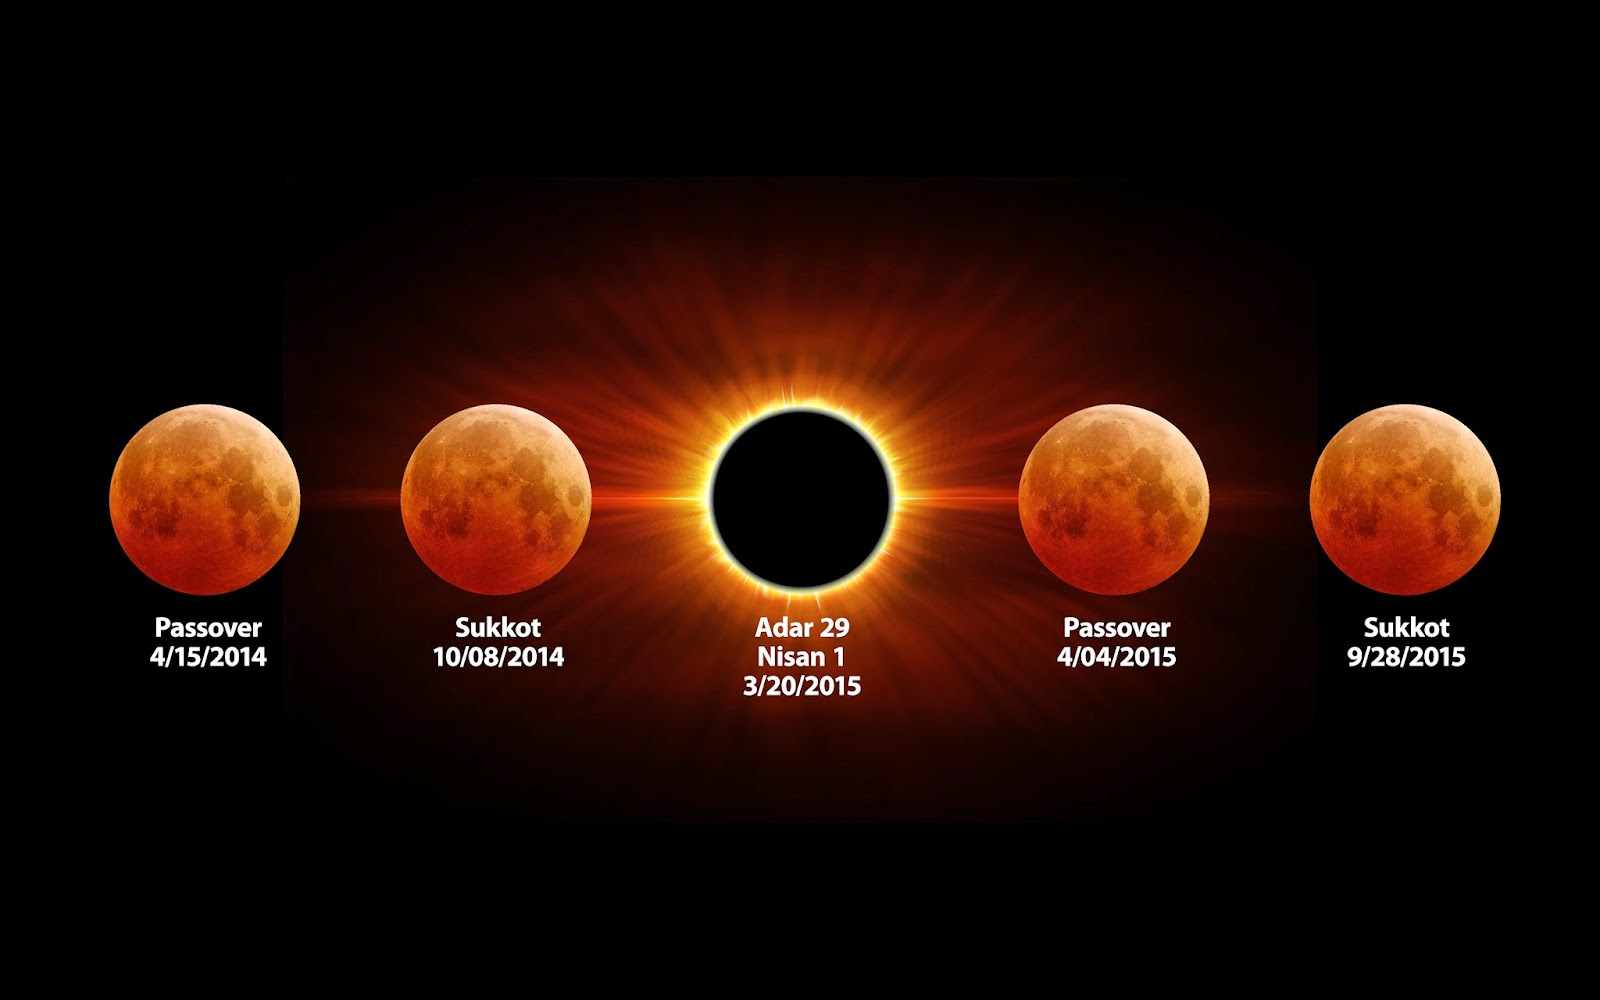 Blood Moon Eclipse On April 15 Is A Special Event   India Post